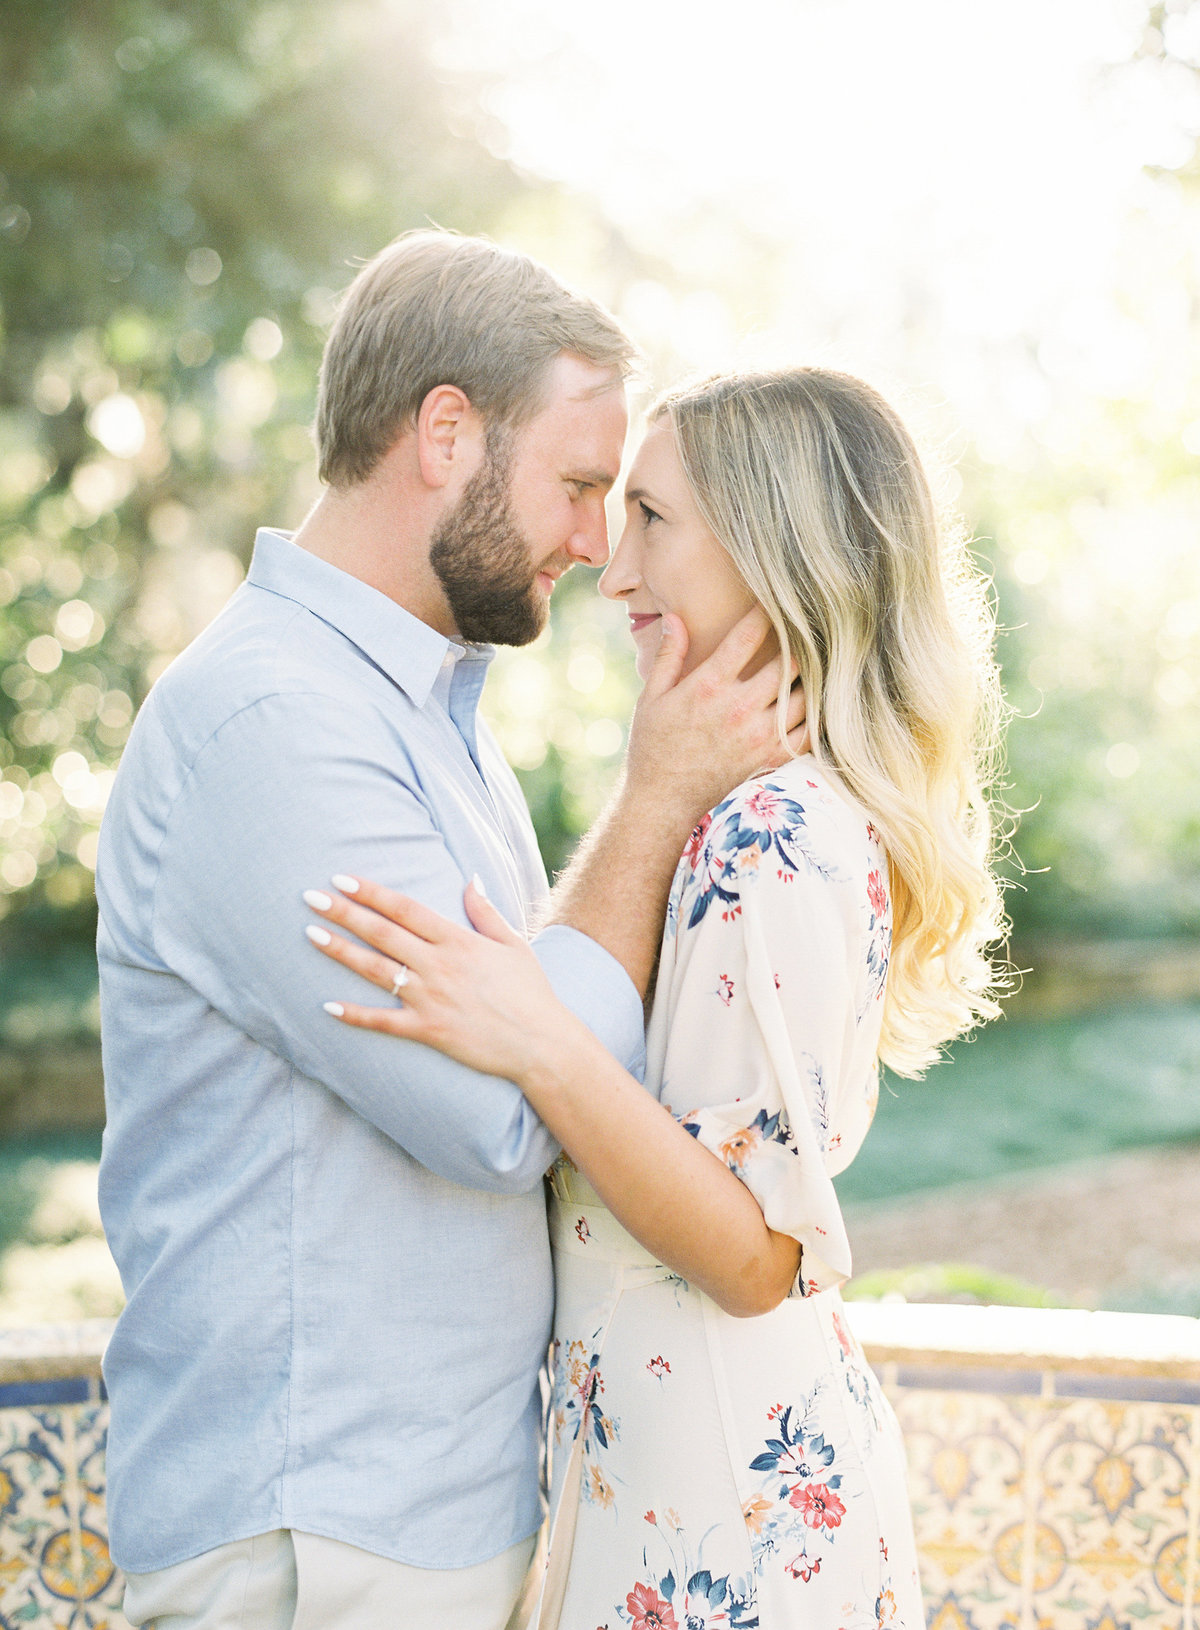 Bok_Tower_Garden_Film_Fine_Art_Engagement_Session-29